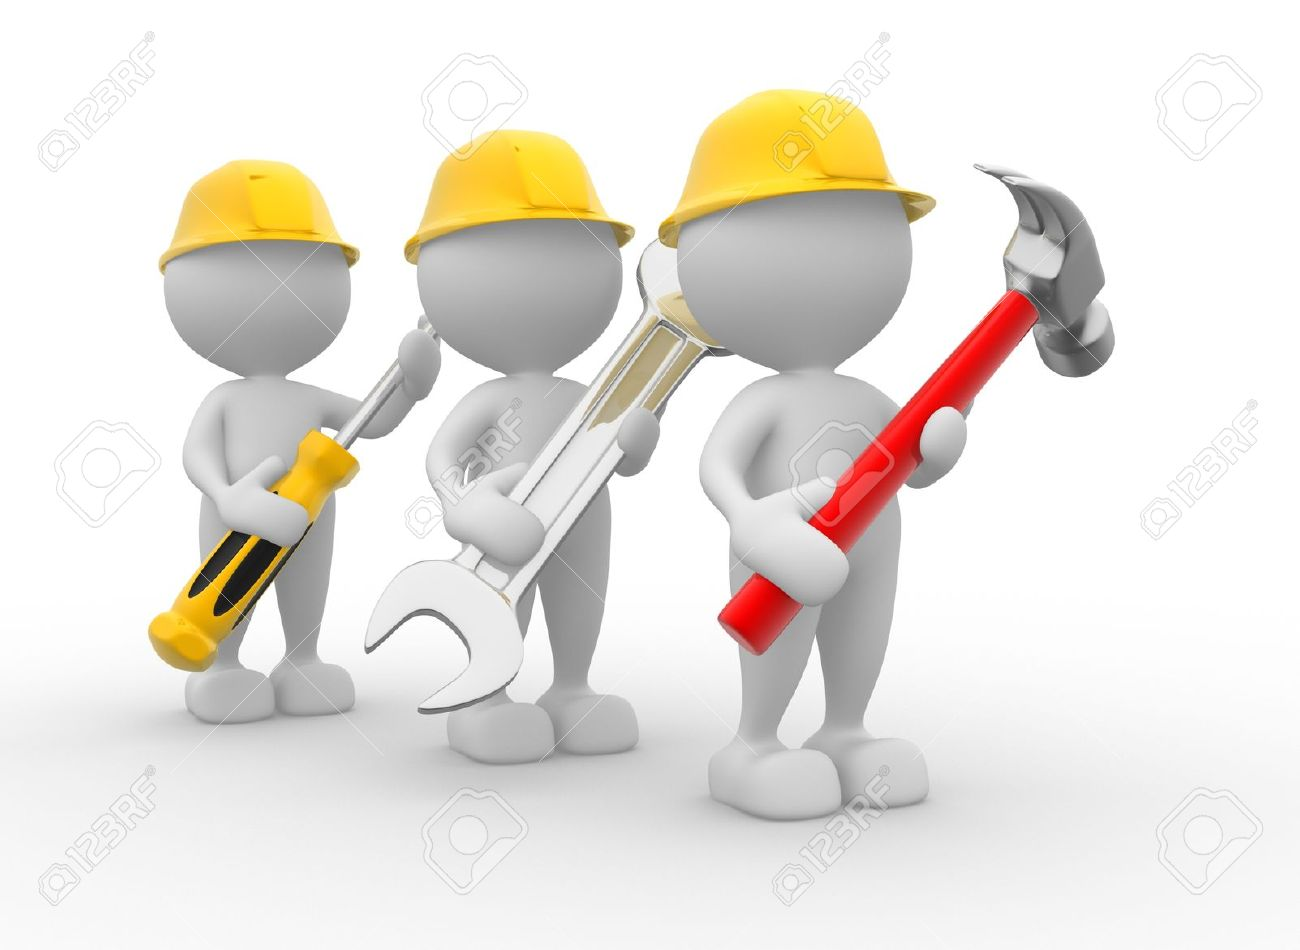 3d people - men, person with the tools in the hands. Wrench, hammer and screwdriver Stock Photo - 17075733